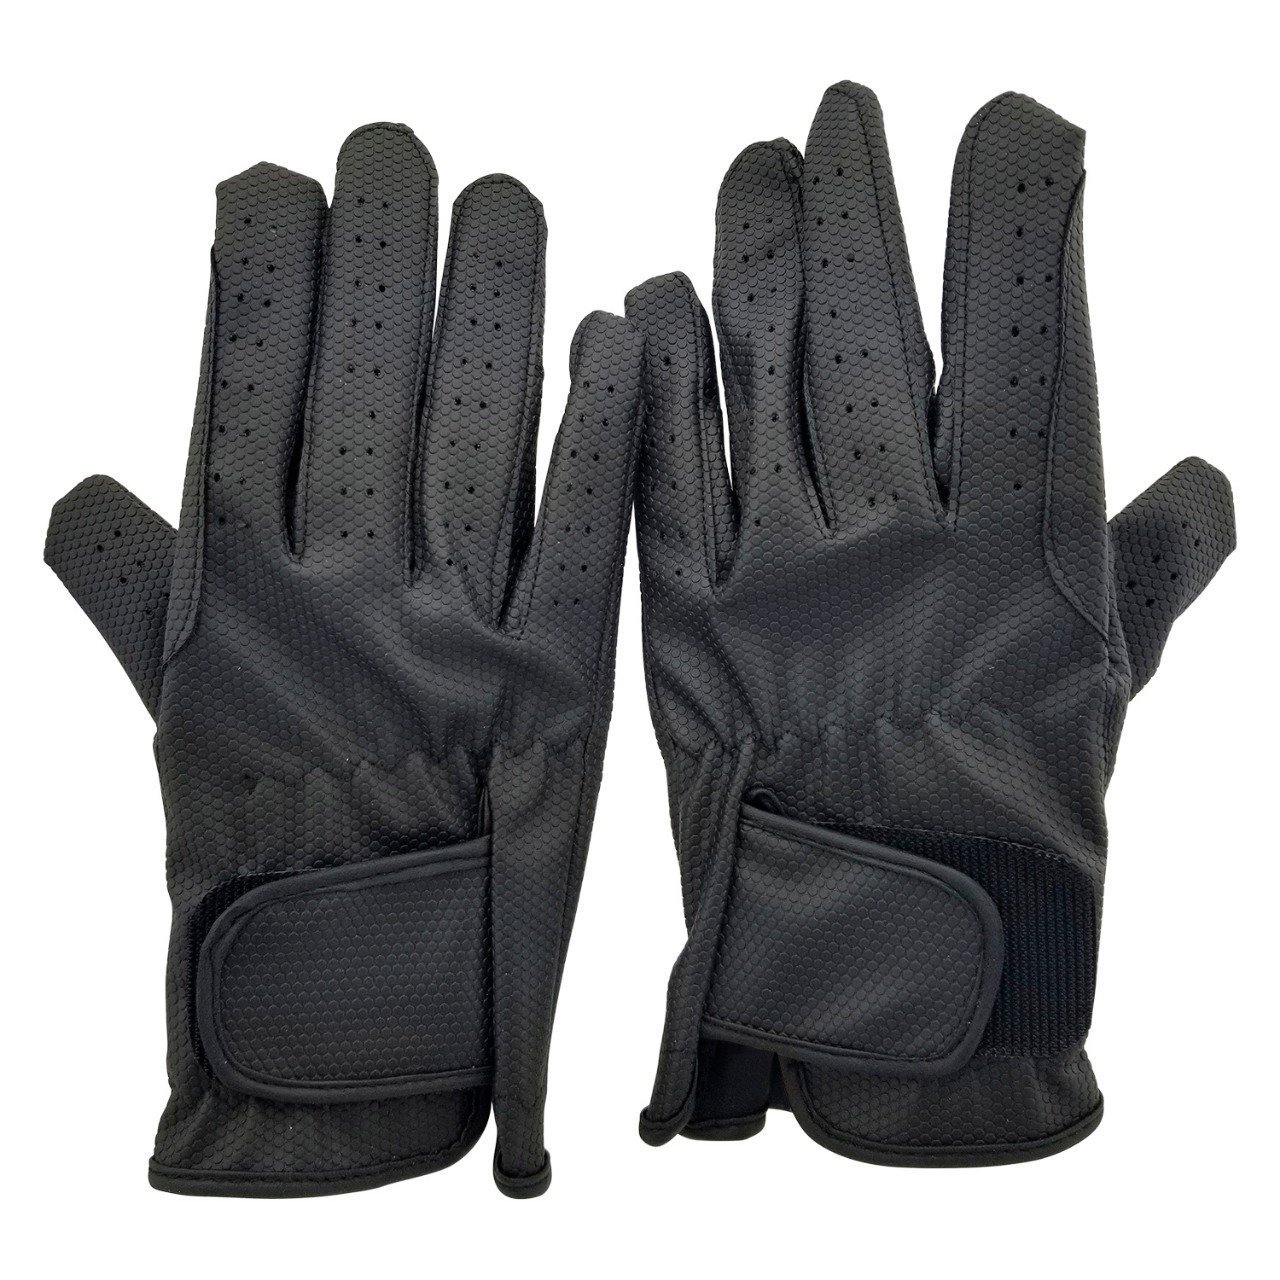 Allness Leather Equestrian Horse Multi Purpose Gents Riding Gloves for Men